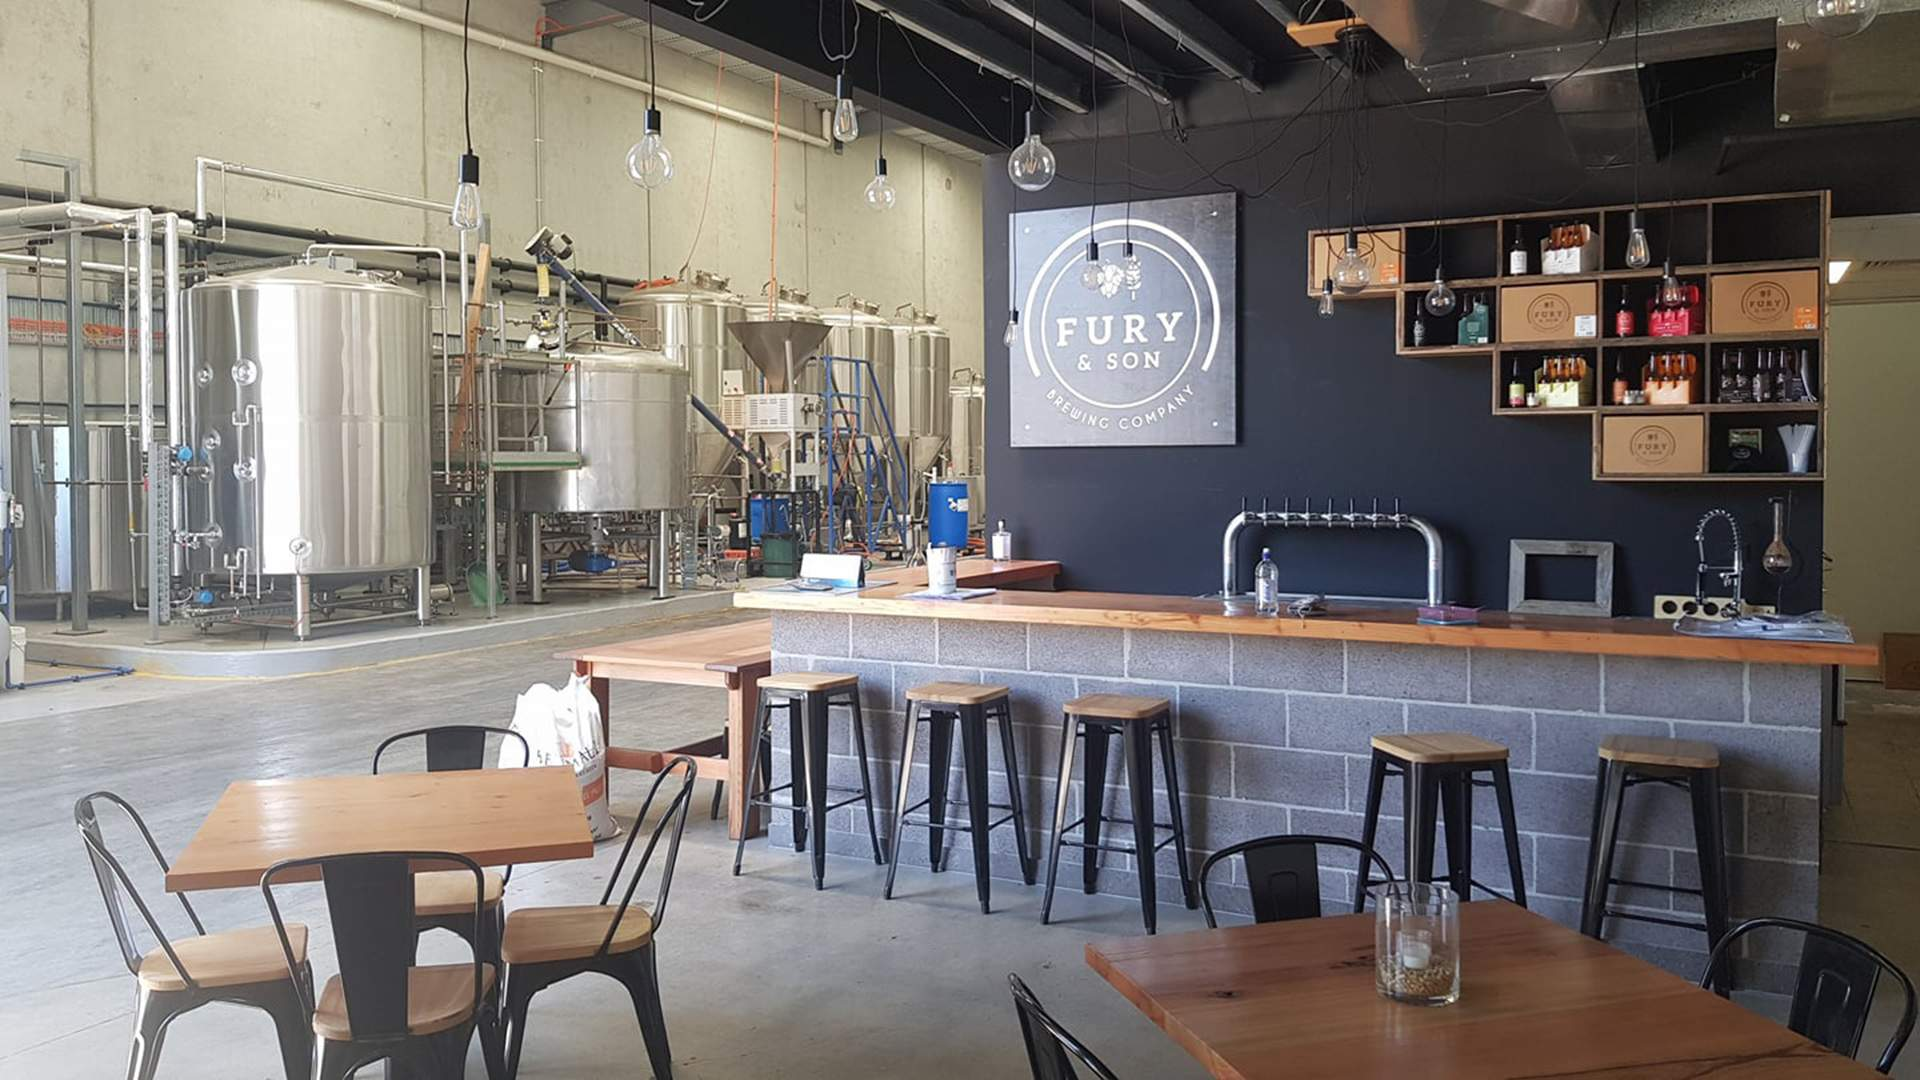 Fury & Son Brewing Company